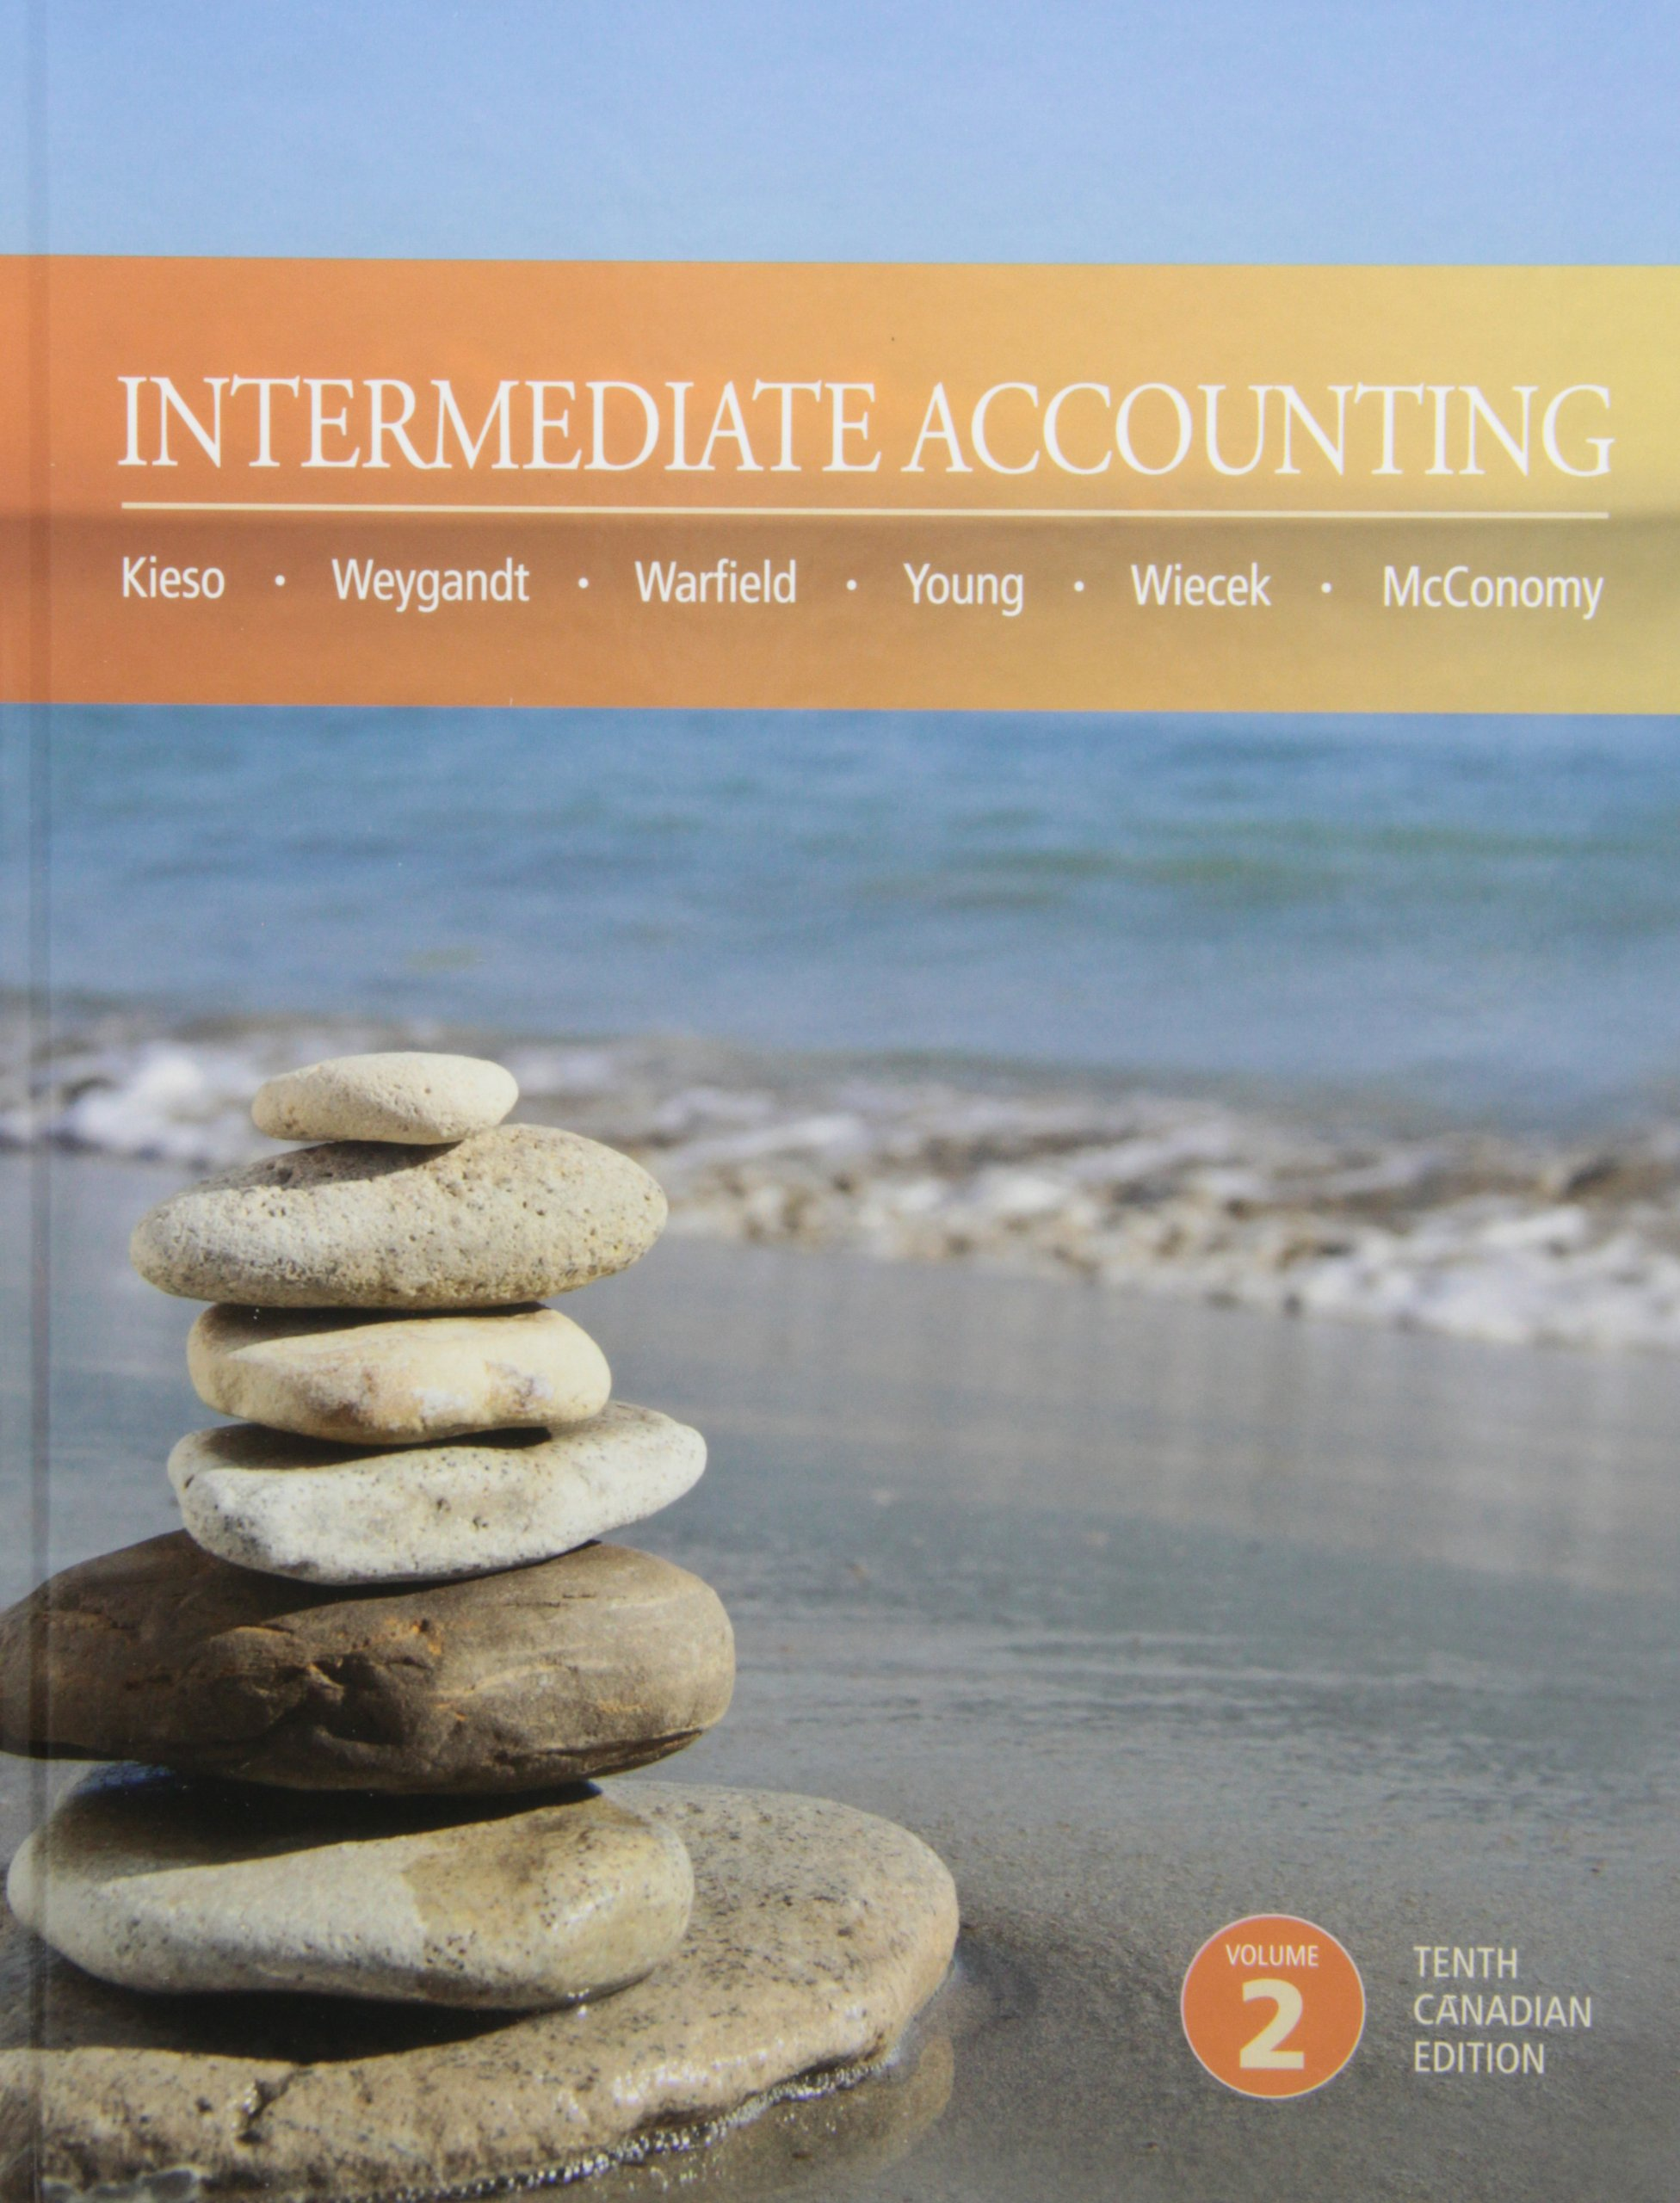 Intermediate accounting 10th canadian edition volume 2 donald e intermediate accounting 10th canadian edition volume 2 donald e kieso jerry j weygandt terry d warfield nicola m young irene m wiecek fandeluxe Images